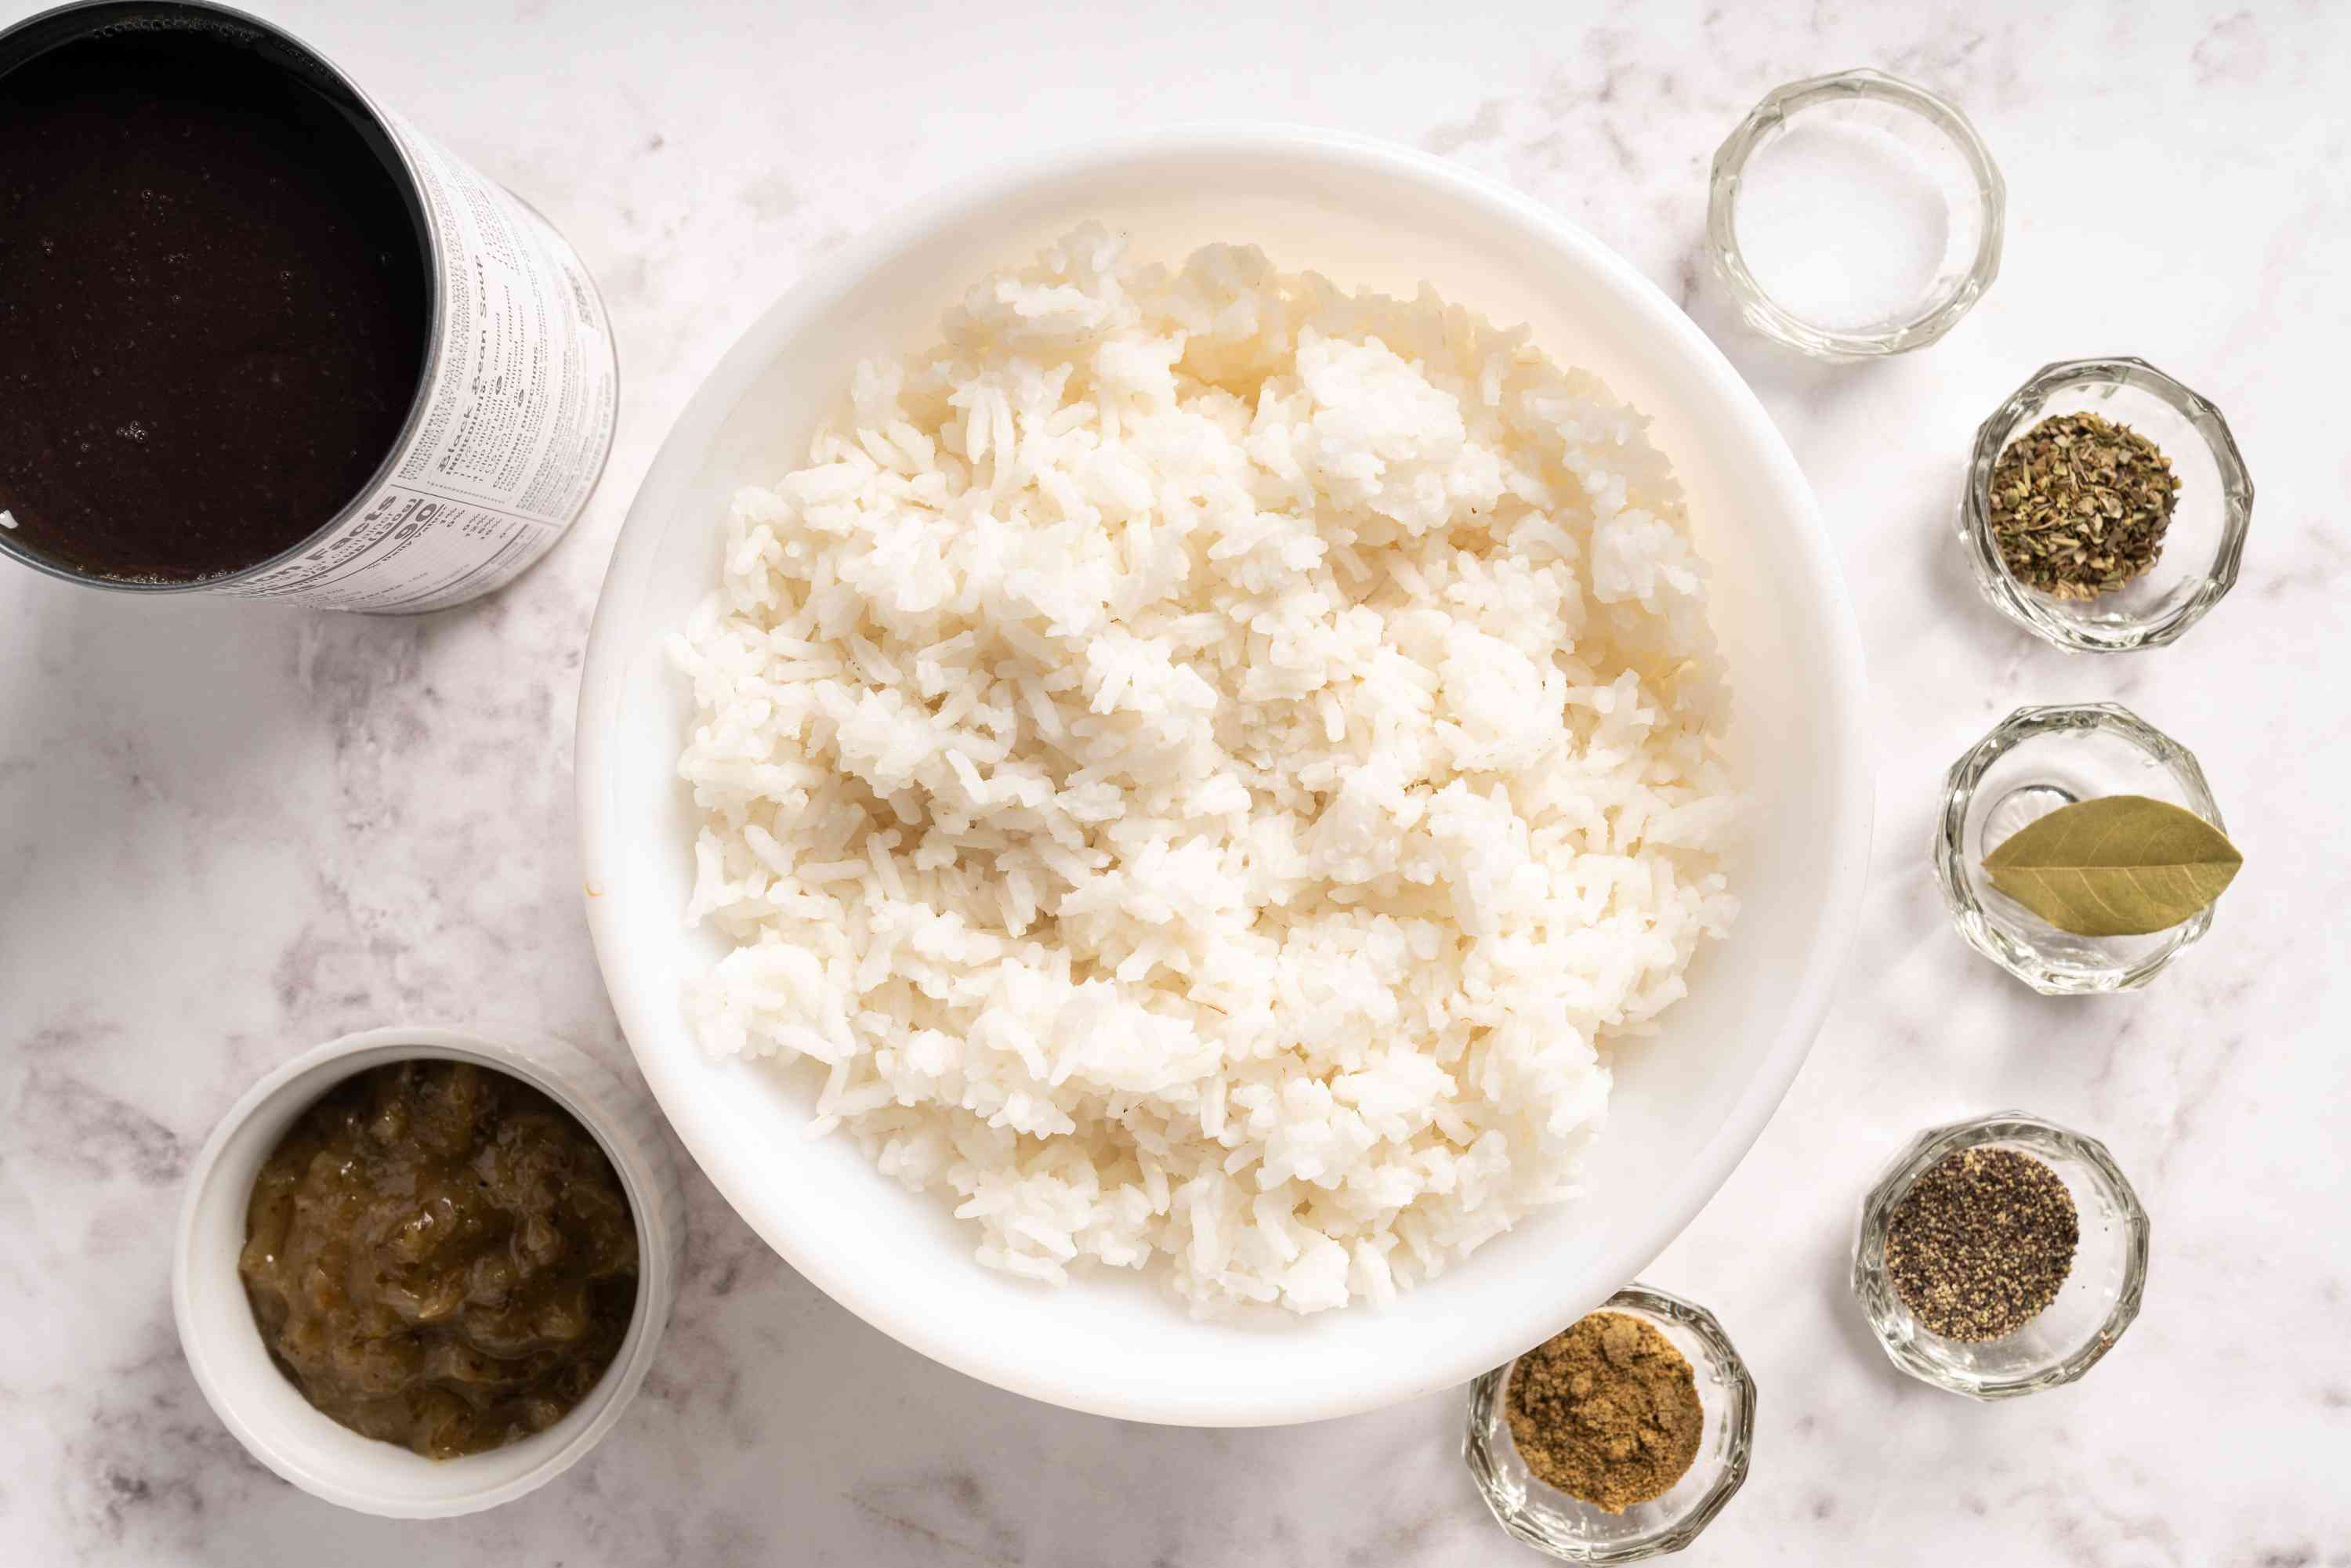 Moros y Cristianos (Black Beans and White Rice) ingredients